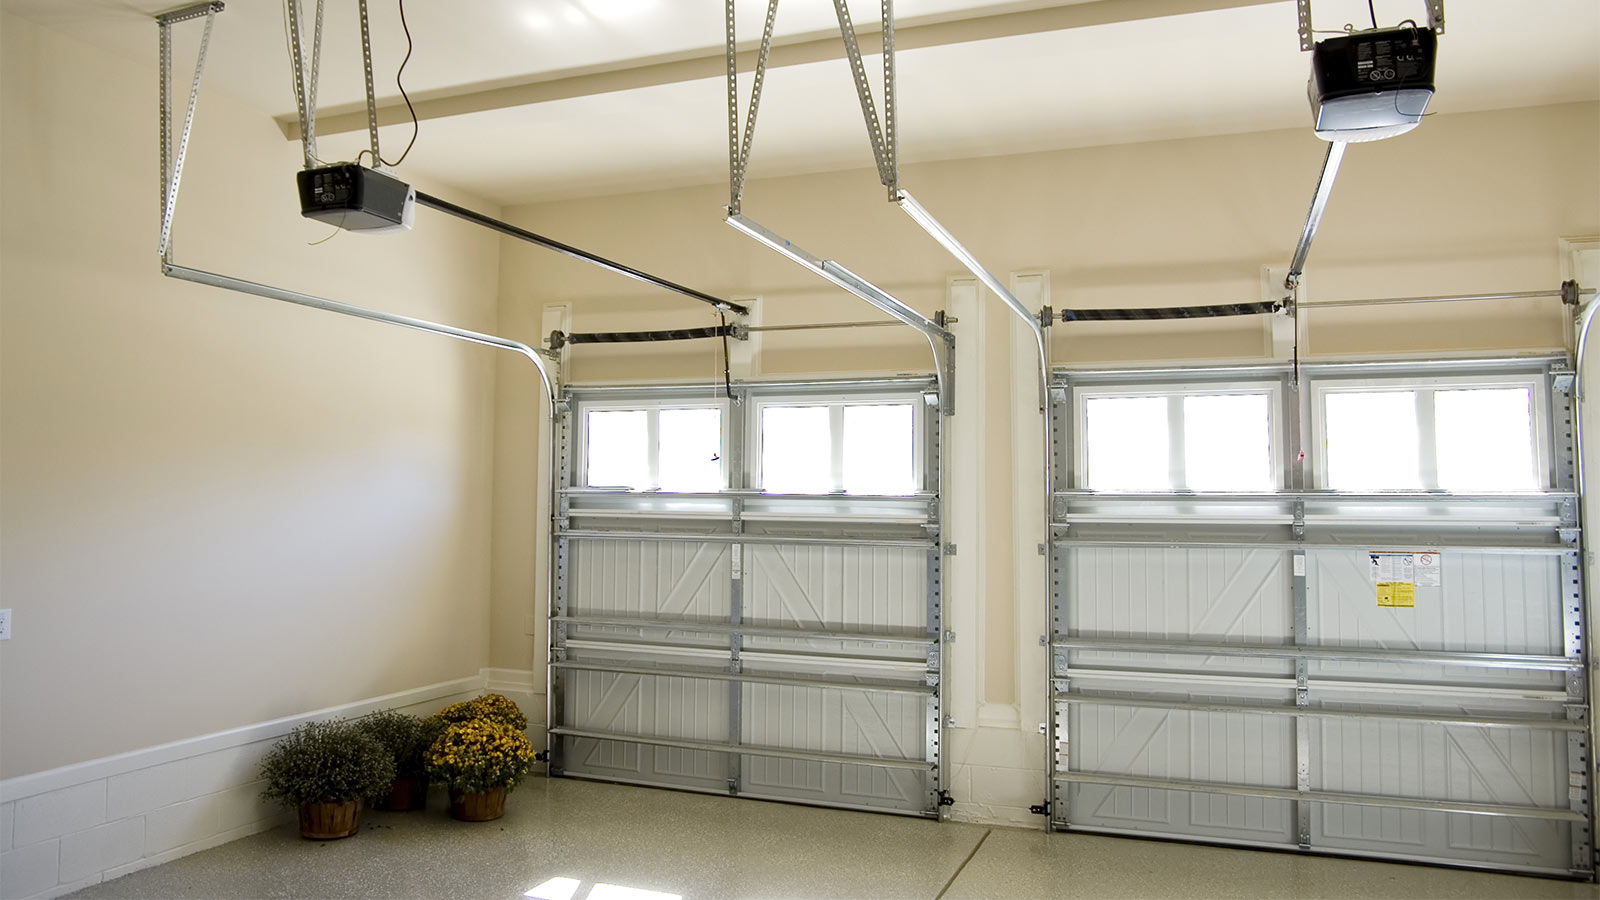 Sectional Garage Doors from Electric Gates Watford suppliers.